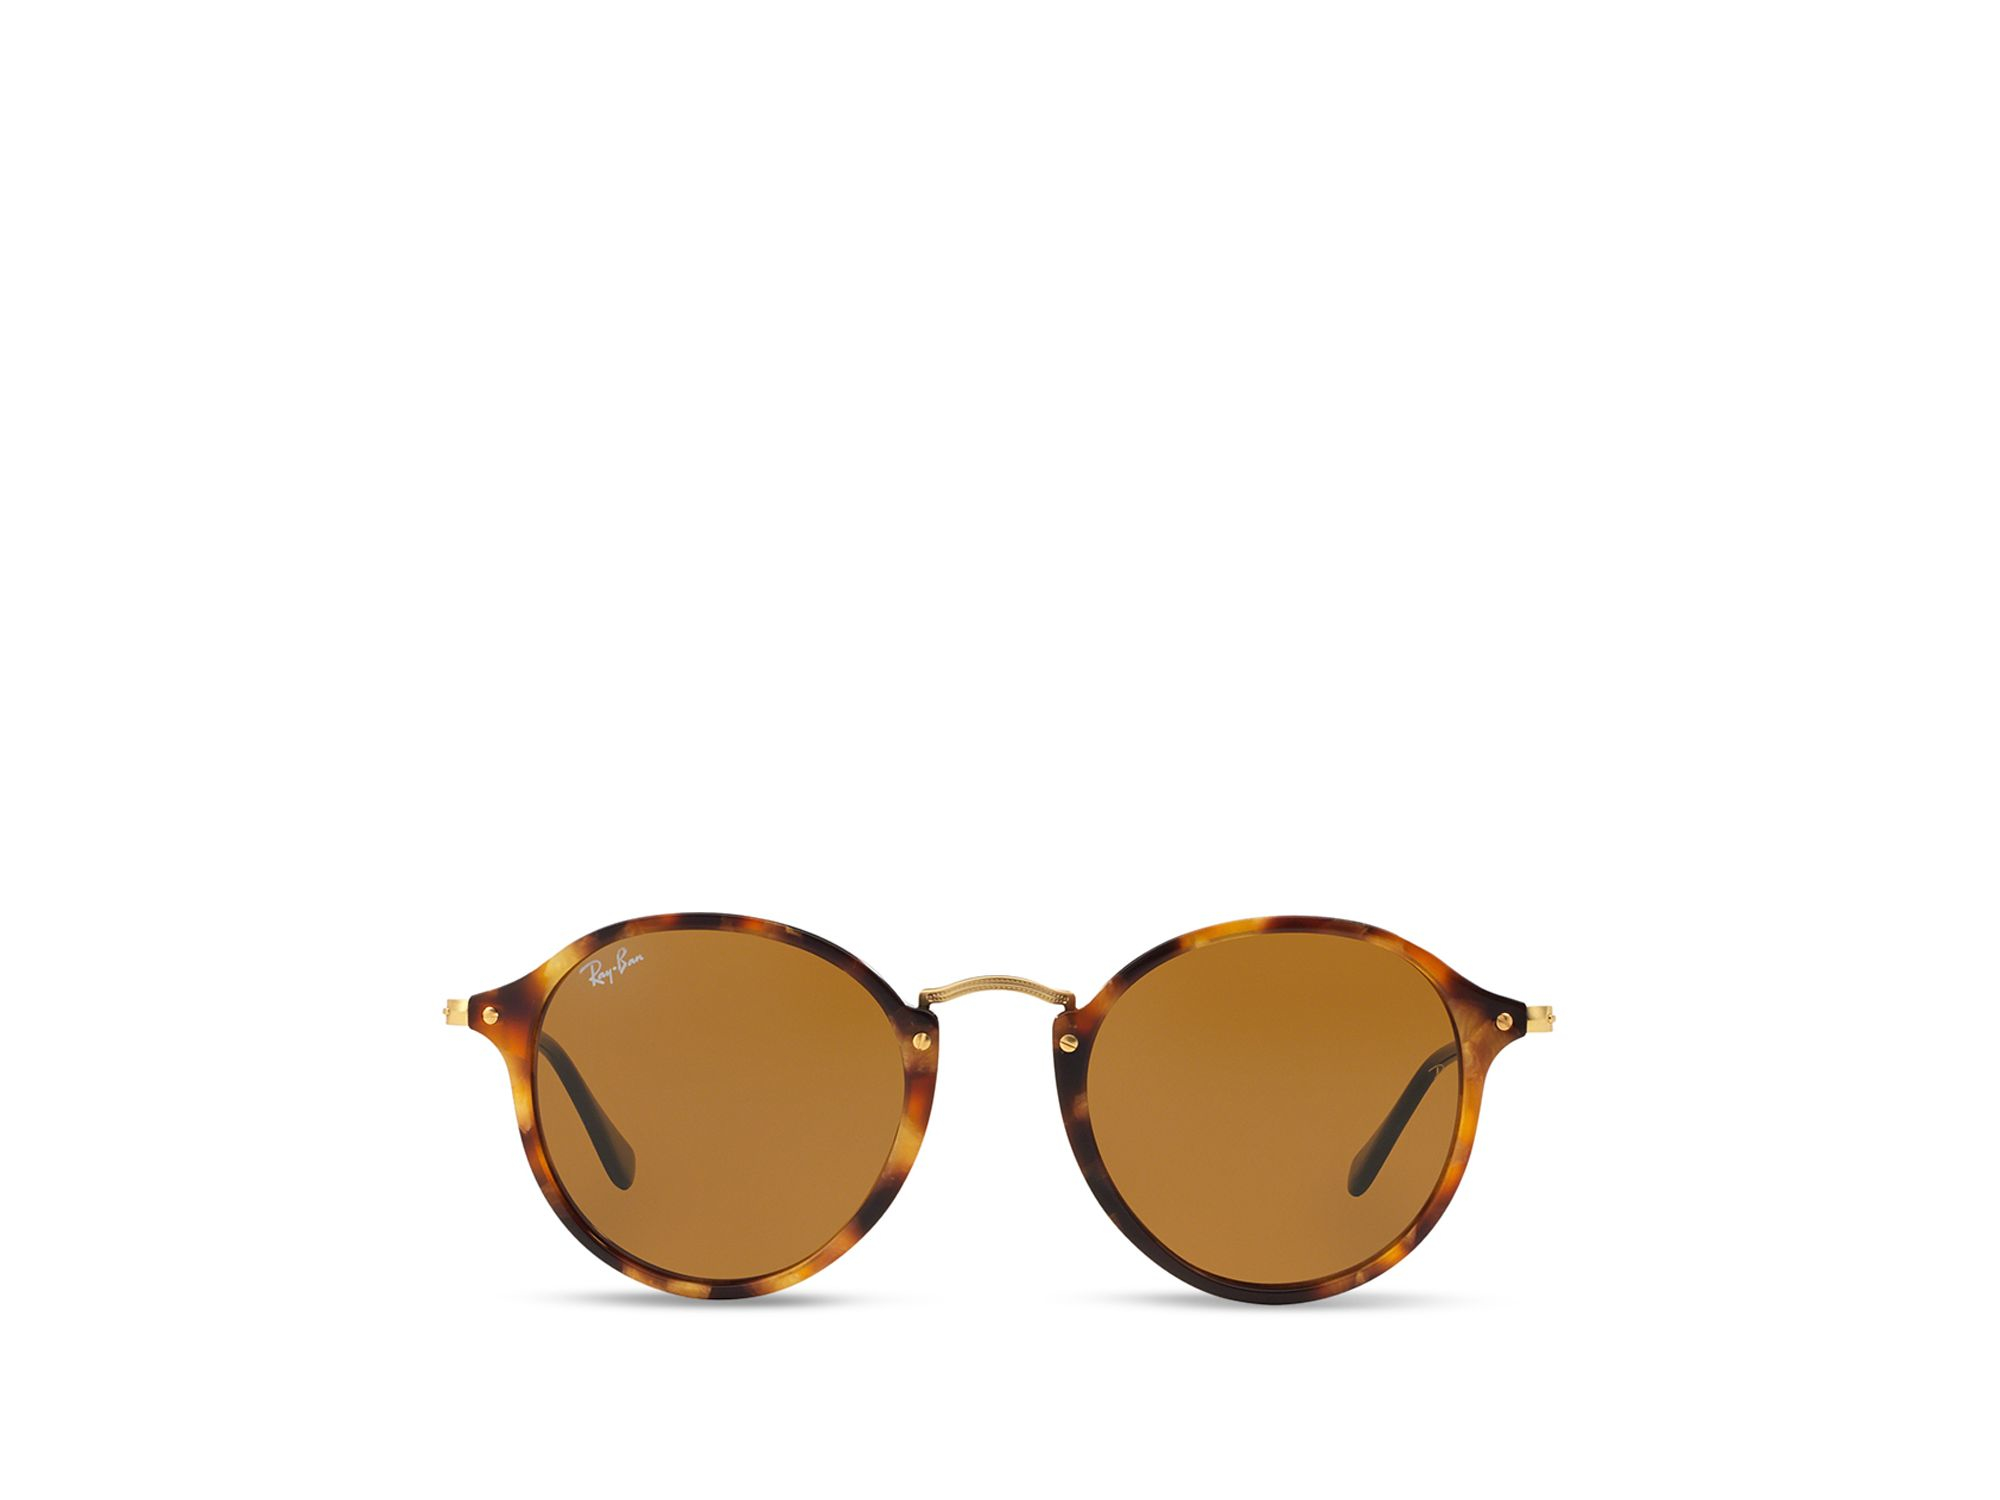 a21b8700dcc Ray-Ban Retro Round Sunglasses in Brown for Men - Lyst